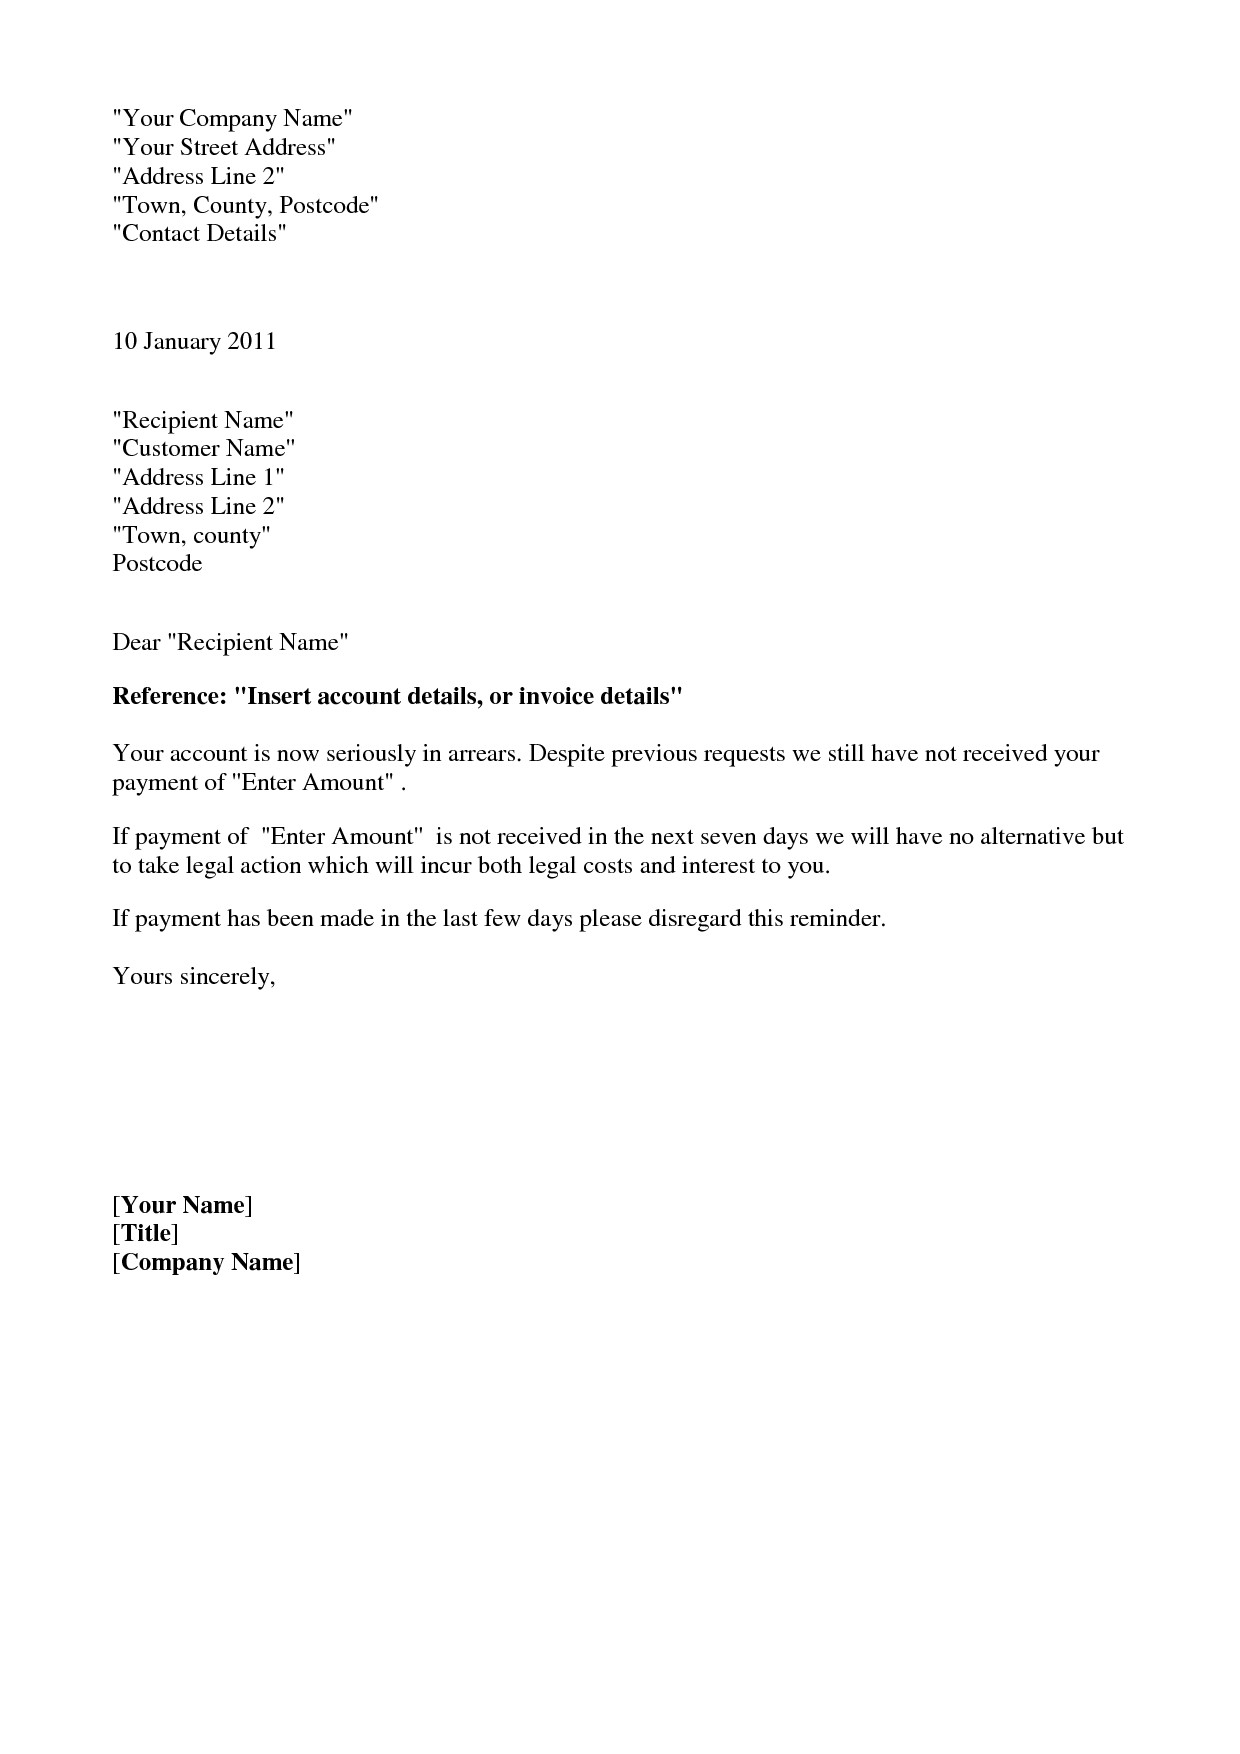 Final Notice before Legal Action Letter Template Uk - Letter Threatening Legal Action Template 22 Legal Demand Letter